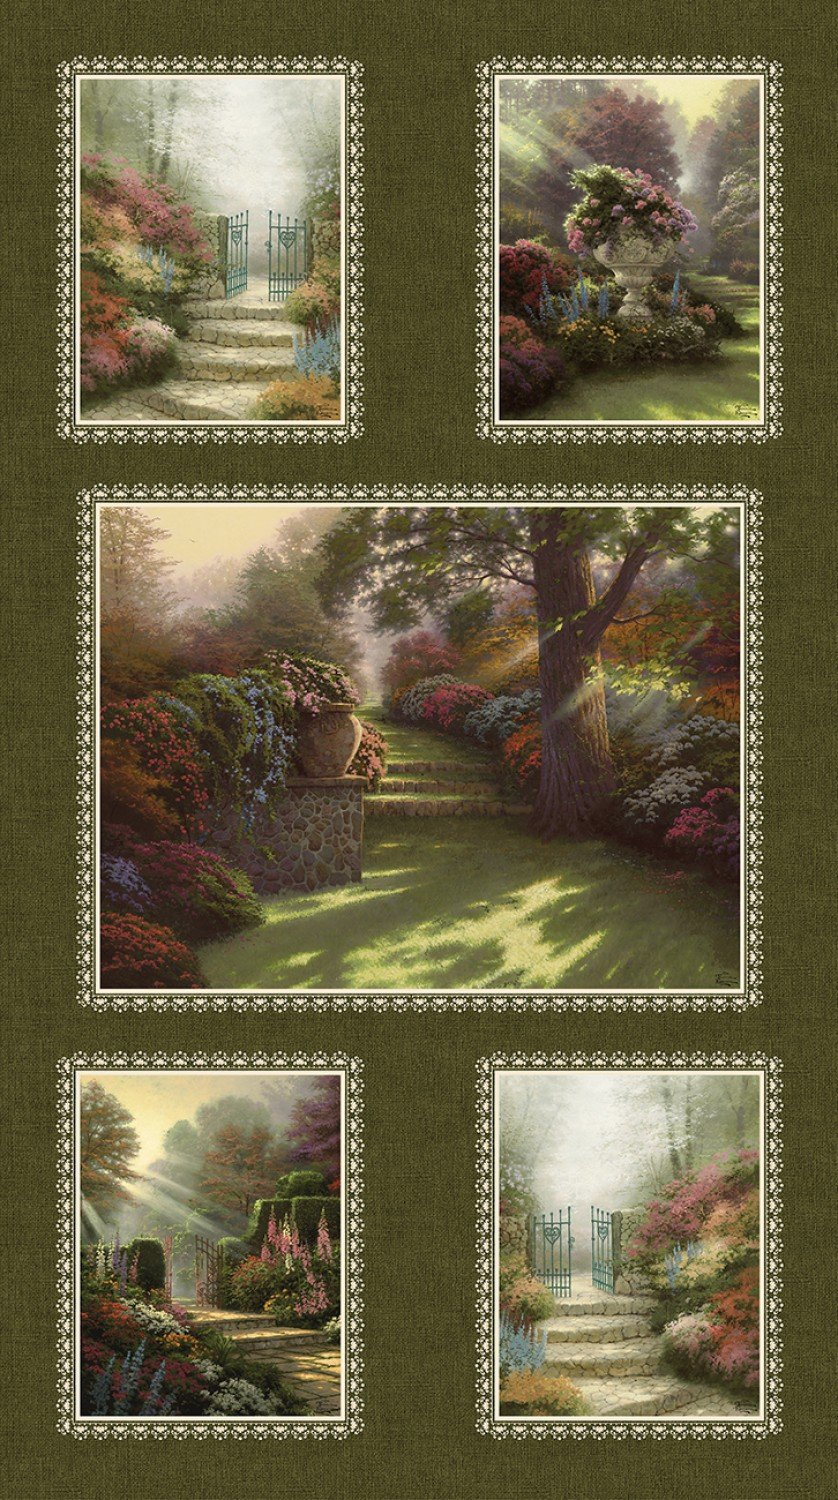 Benartex - Thomas Kinkade-Pathway to Paradise-PANEL - 03032-99 - I-3